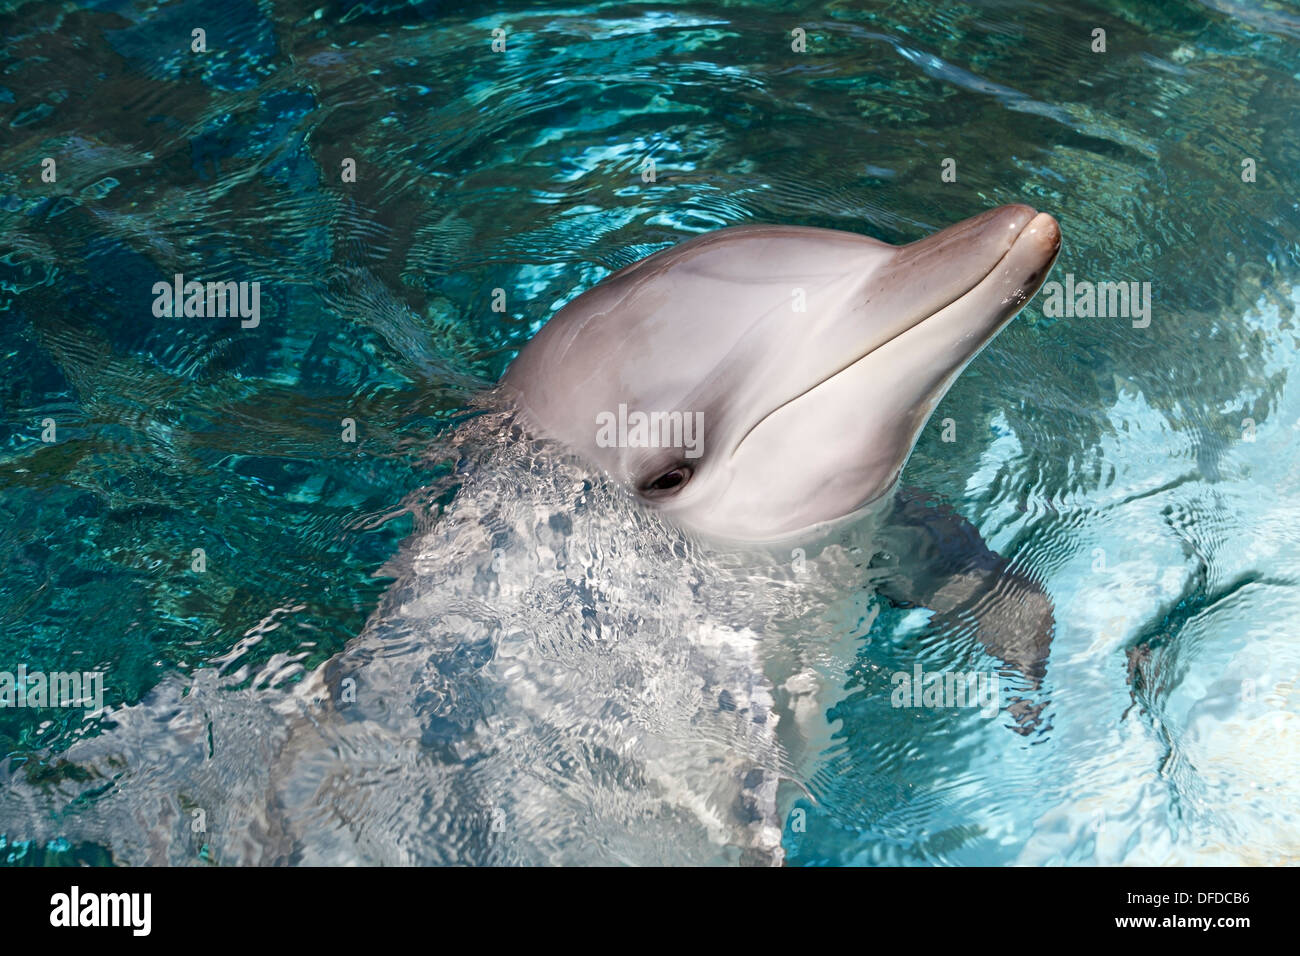 Bottlenose Dolphin head and face above water - Stock Image